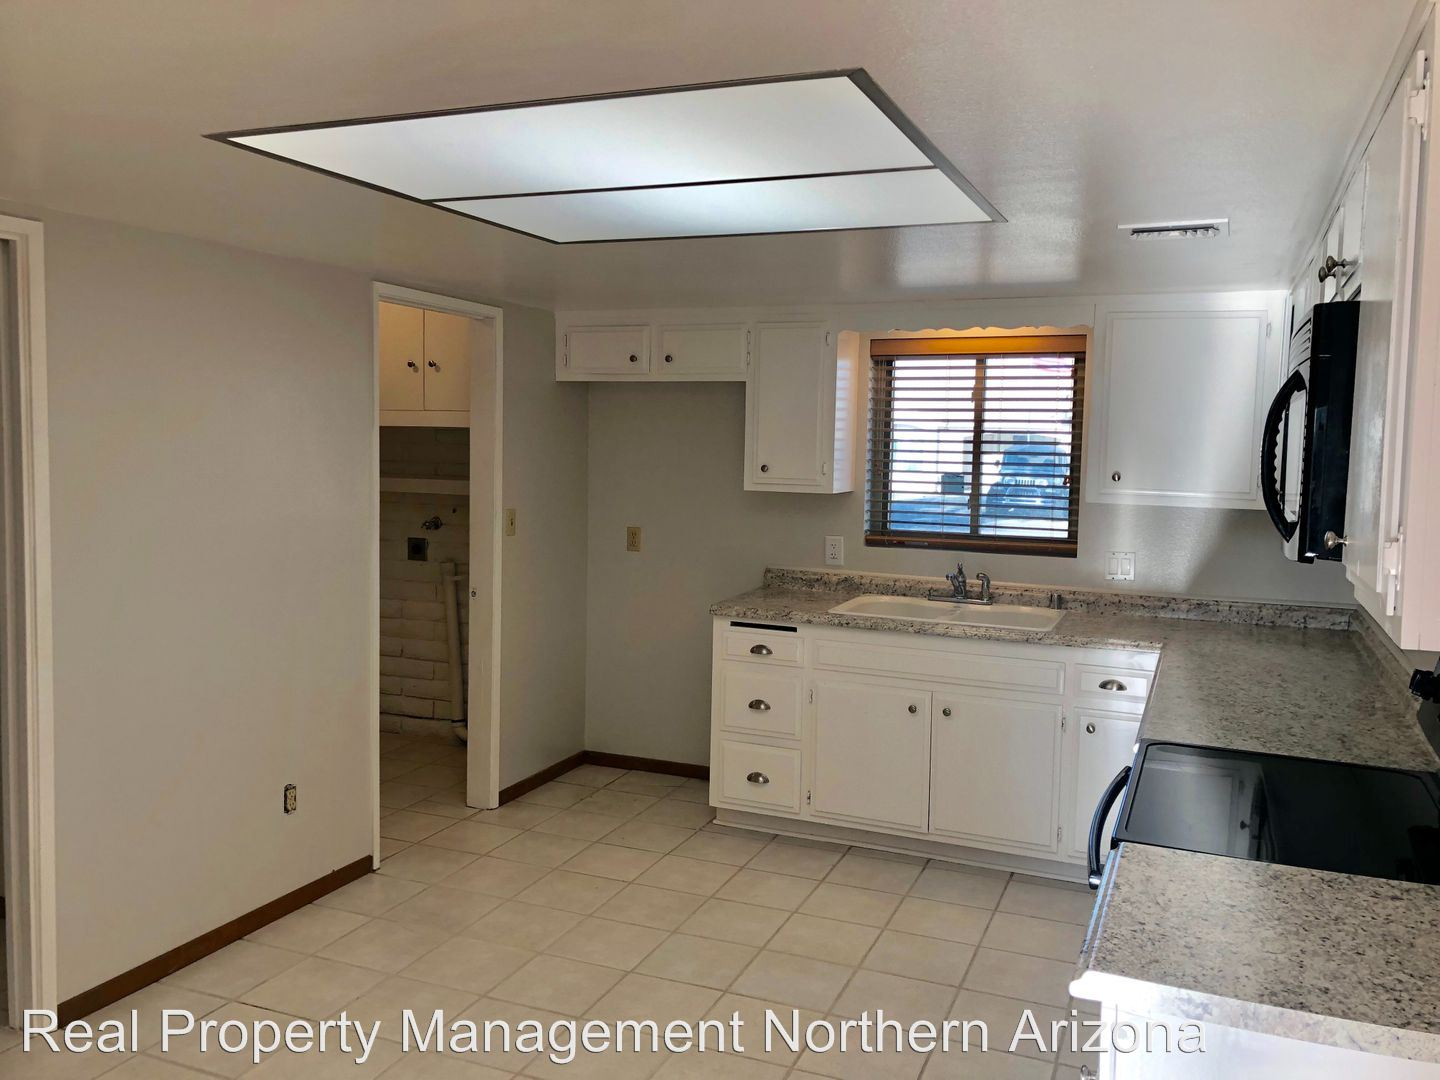 20 Best Apartments In Bullhead City, AZ (with pictures)!